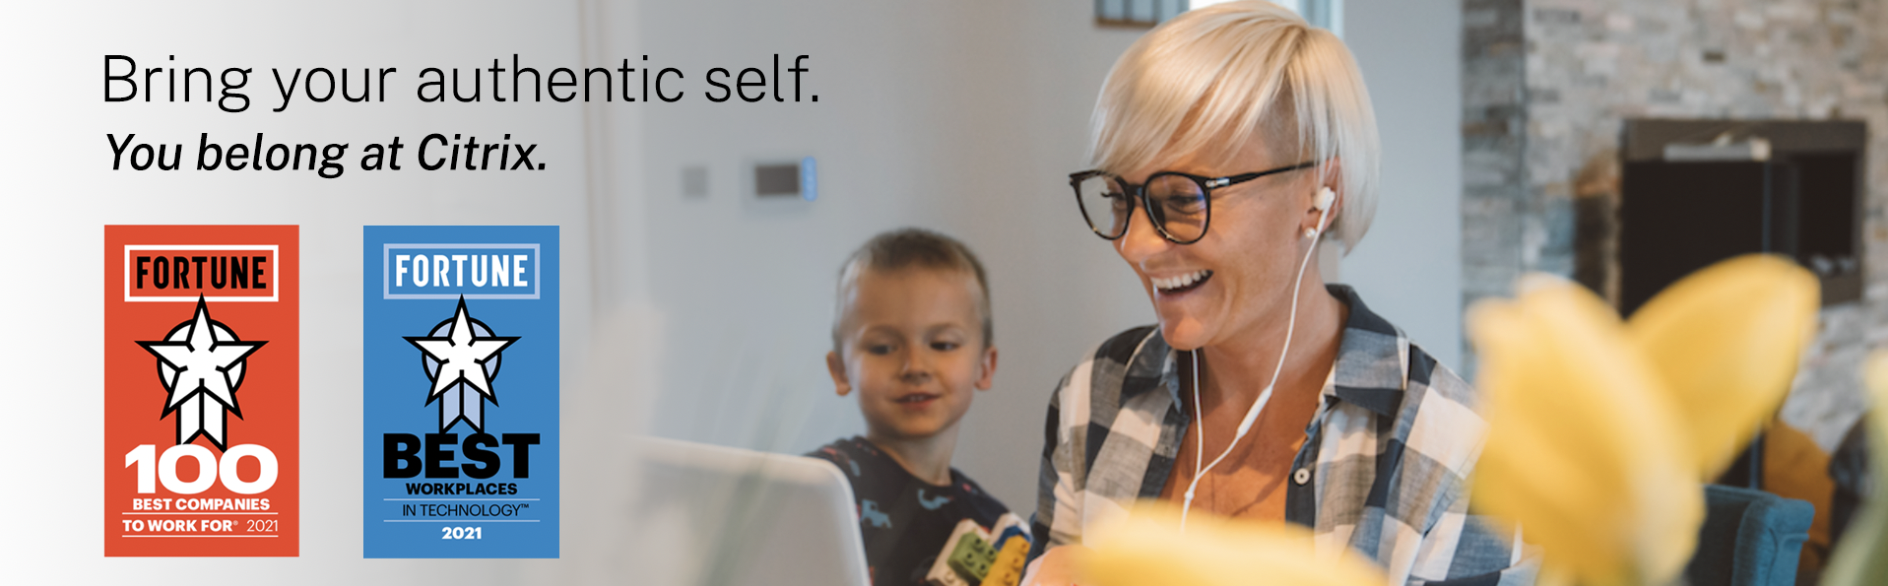 Bring your authentic self. You belong at Citrix.